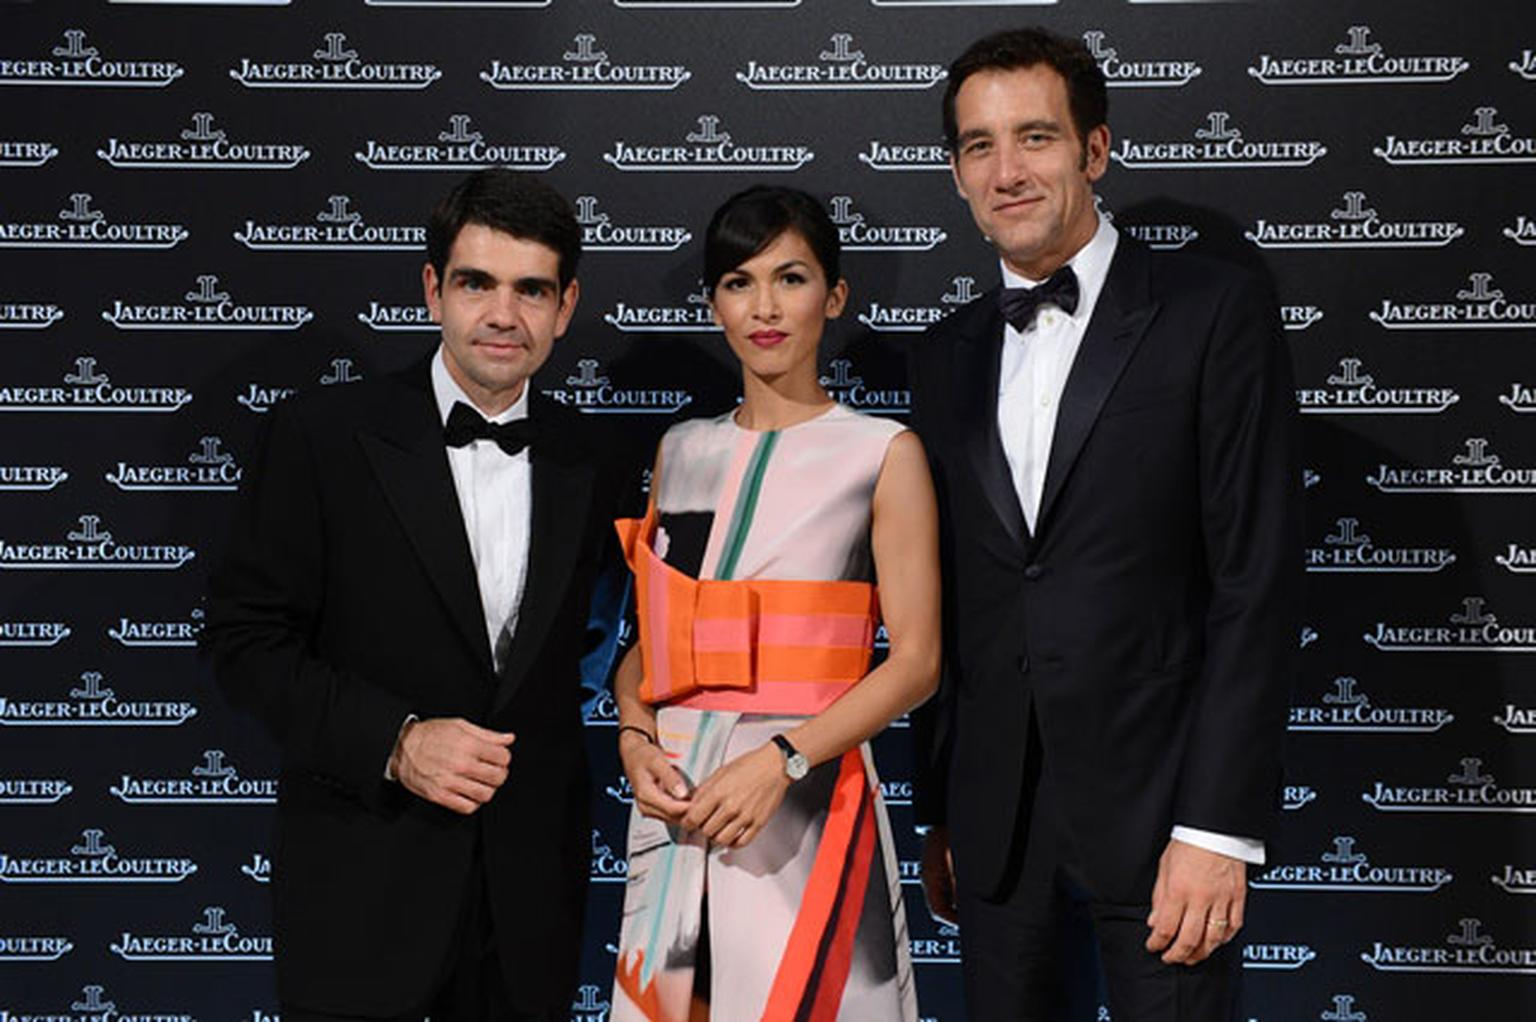 JLC-Jerome-Lambert-Jaeger-LeCoultre-CEO,-Elodie-Young,-Clive-Owen-at-Jaeger-LeCoultre-Rendez-Vous-in-Venice.jpg